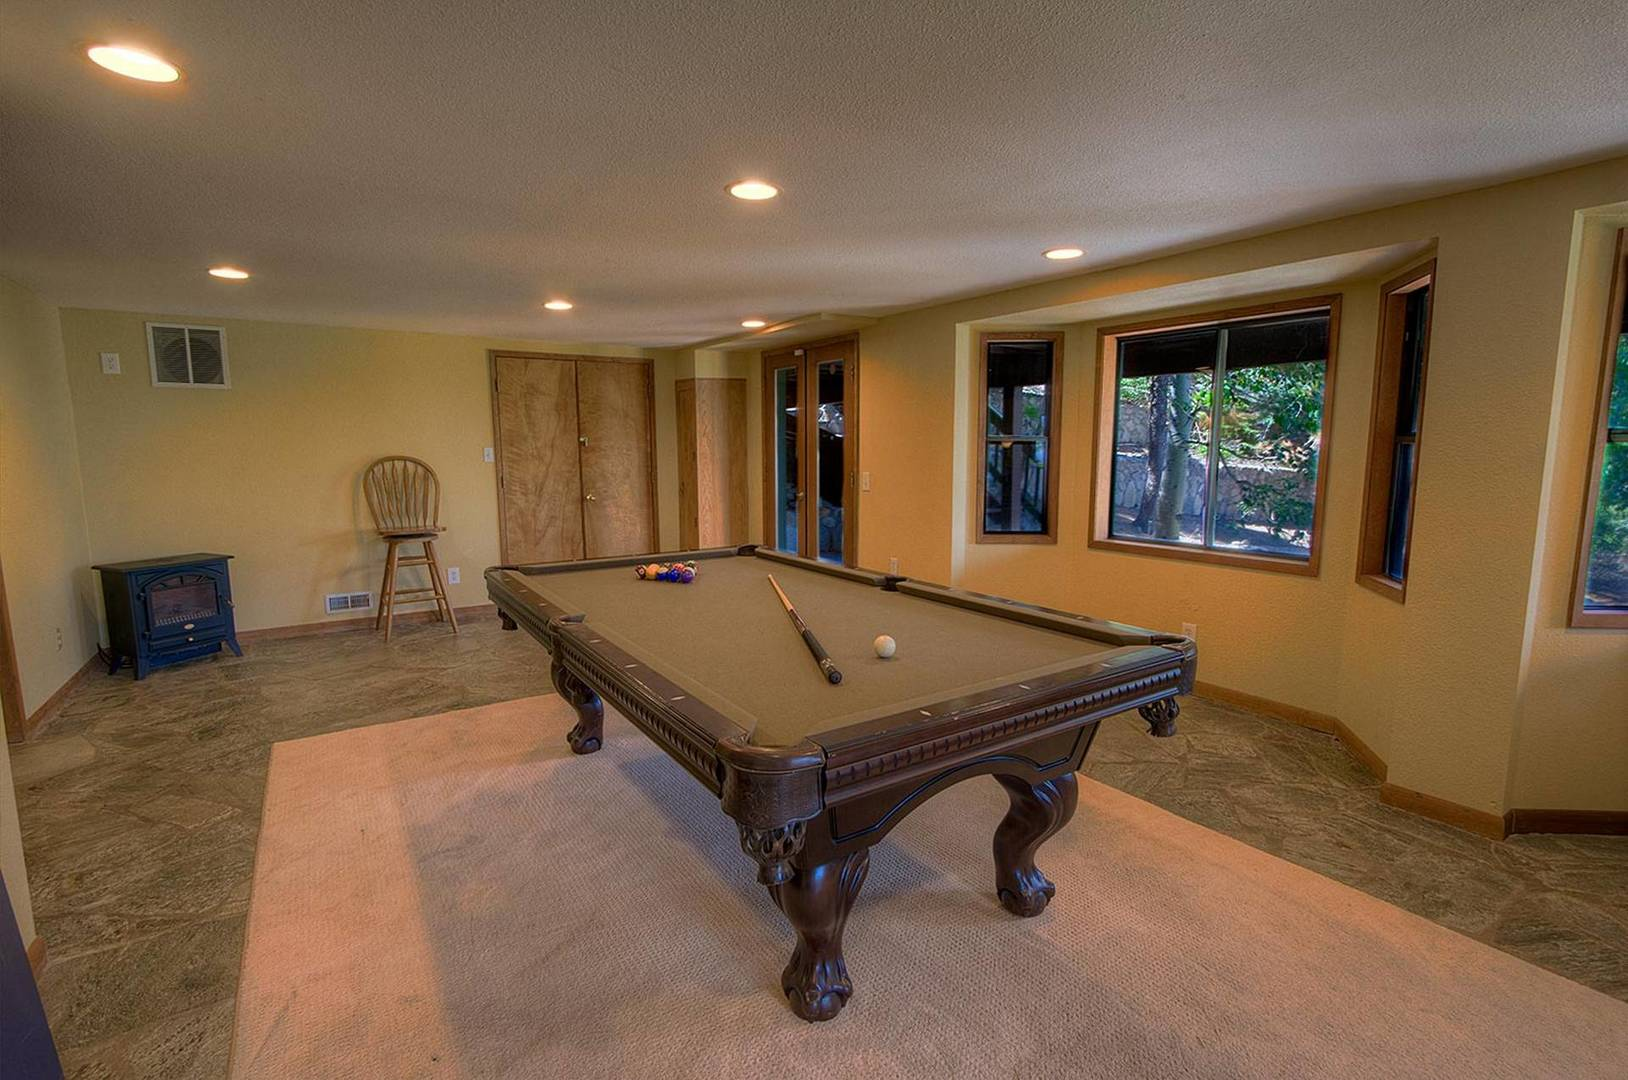 ivh1810 Pool Table